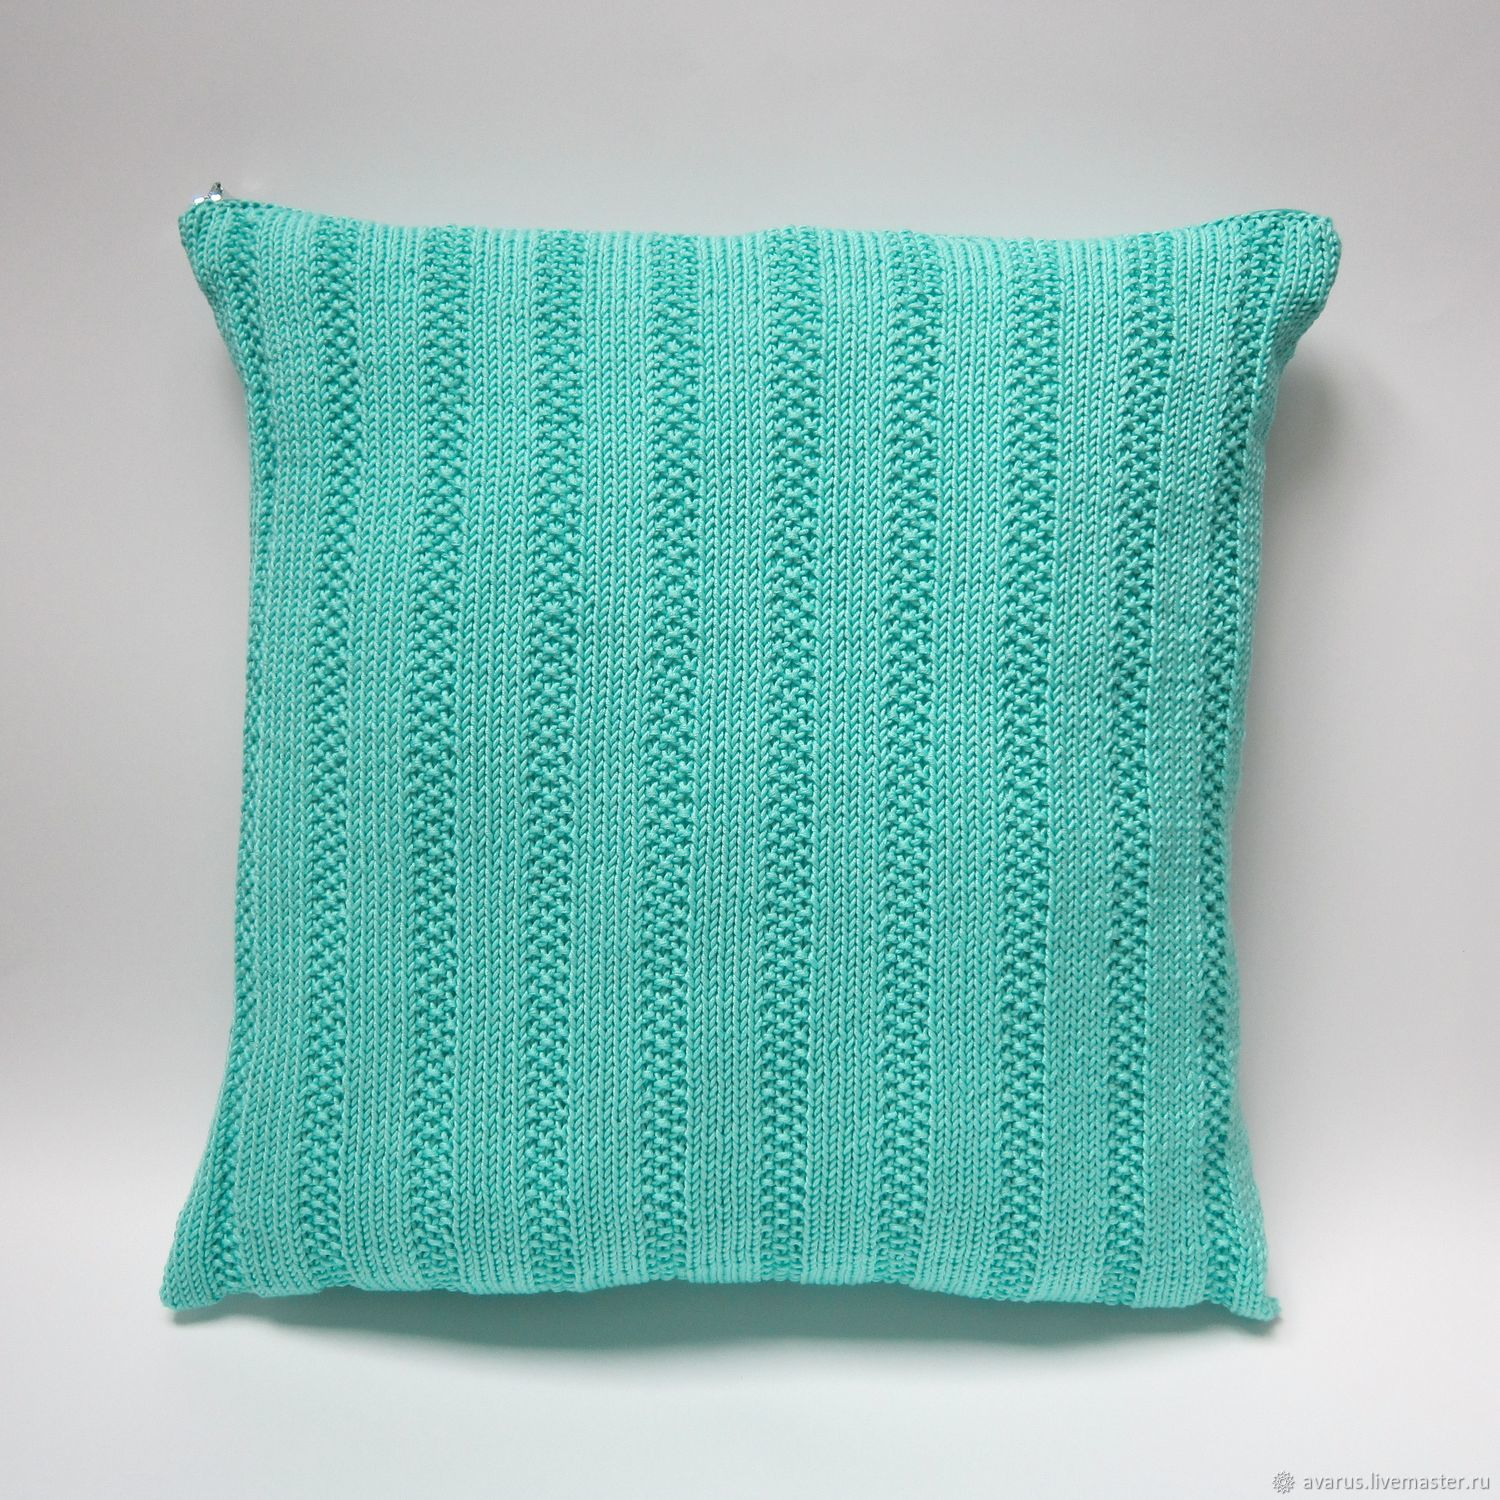 Handmade Livemaster Turquoise Knit Pillow 16x16 Decorative Cover Toss